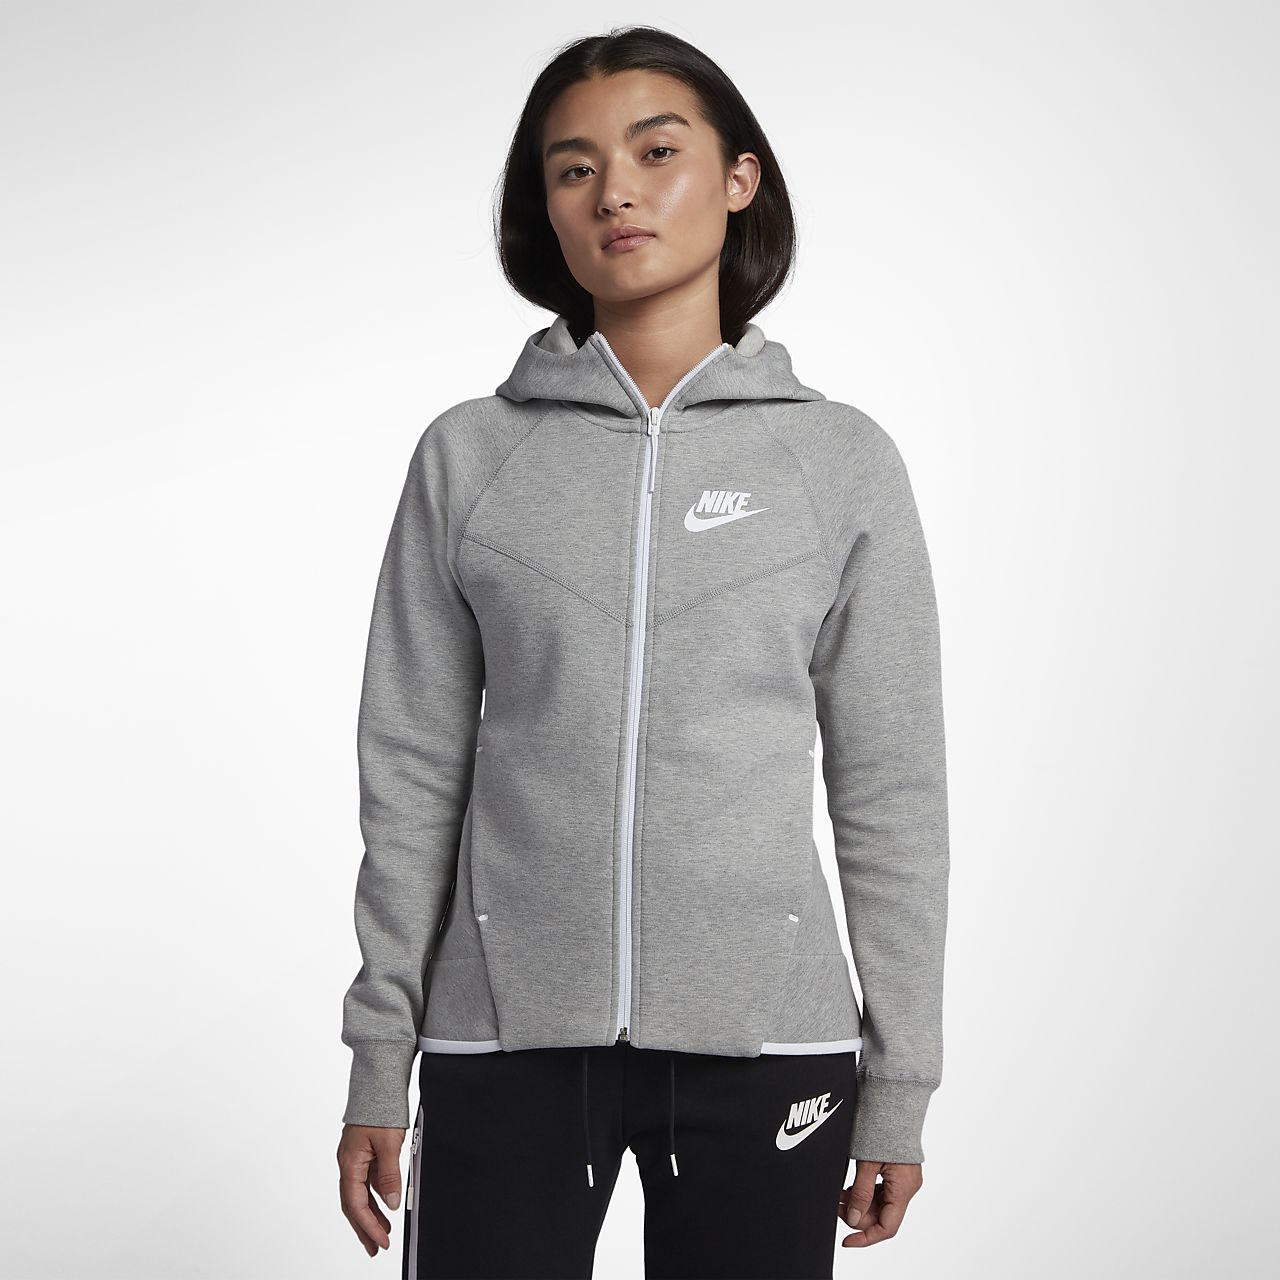 2afbcef930b9 Nike Sportswear Tech Fleece Windrunner Women s Full-Zip Hoodie. Nike ...